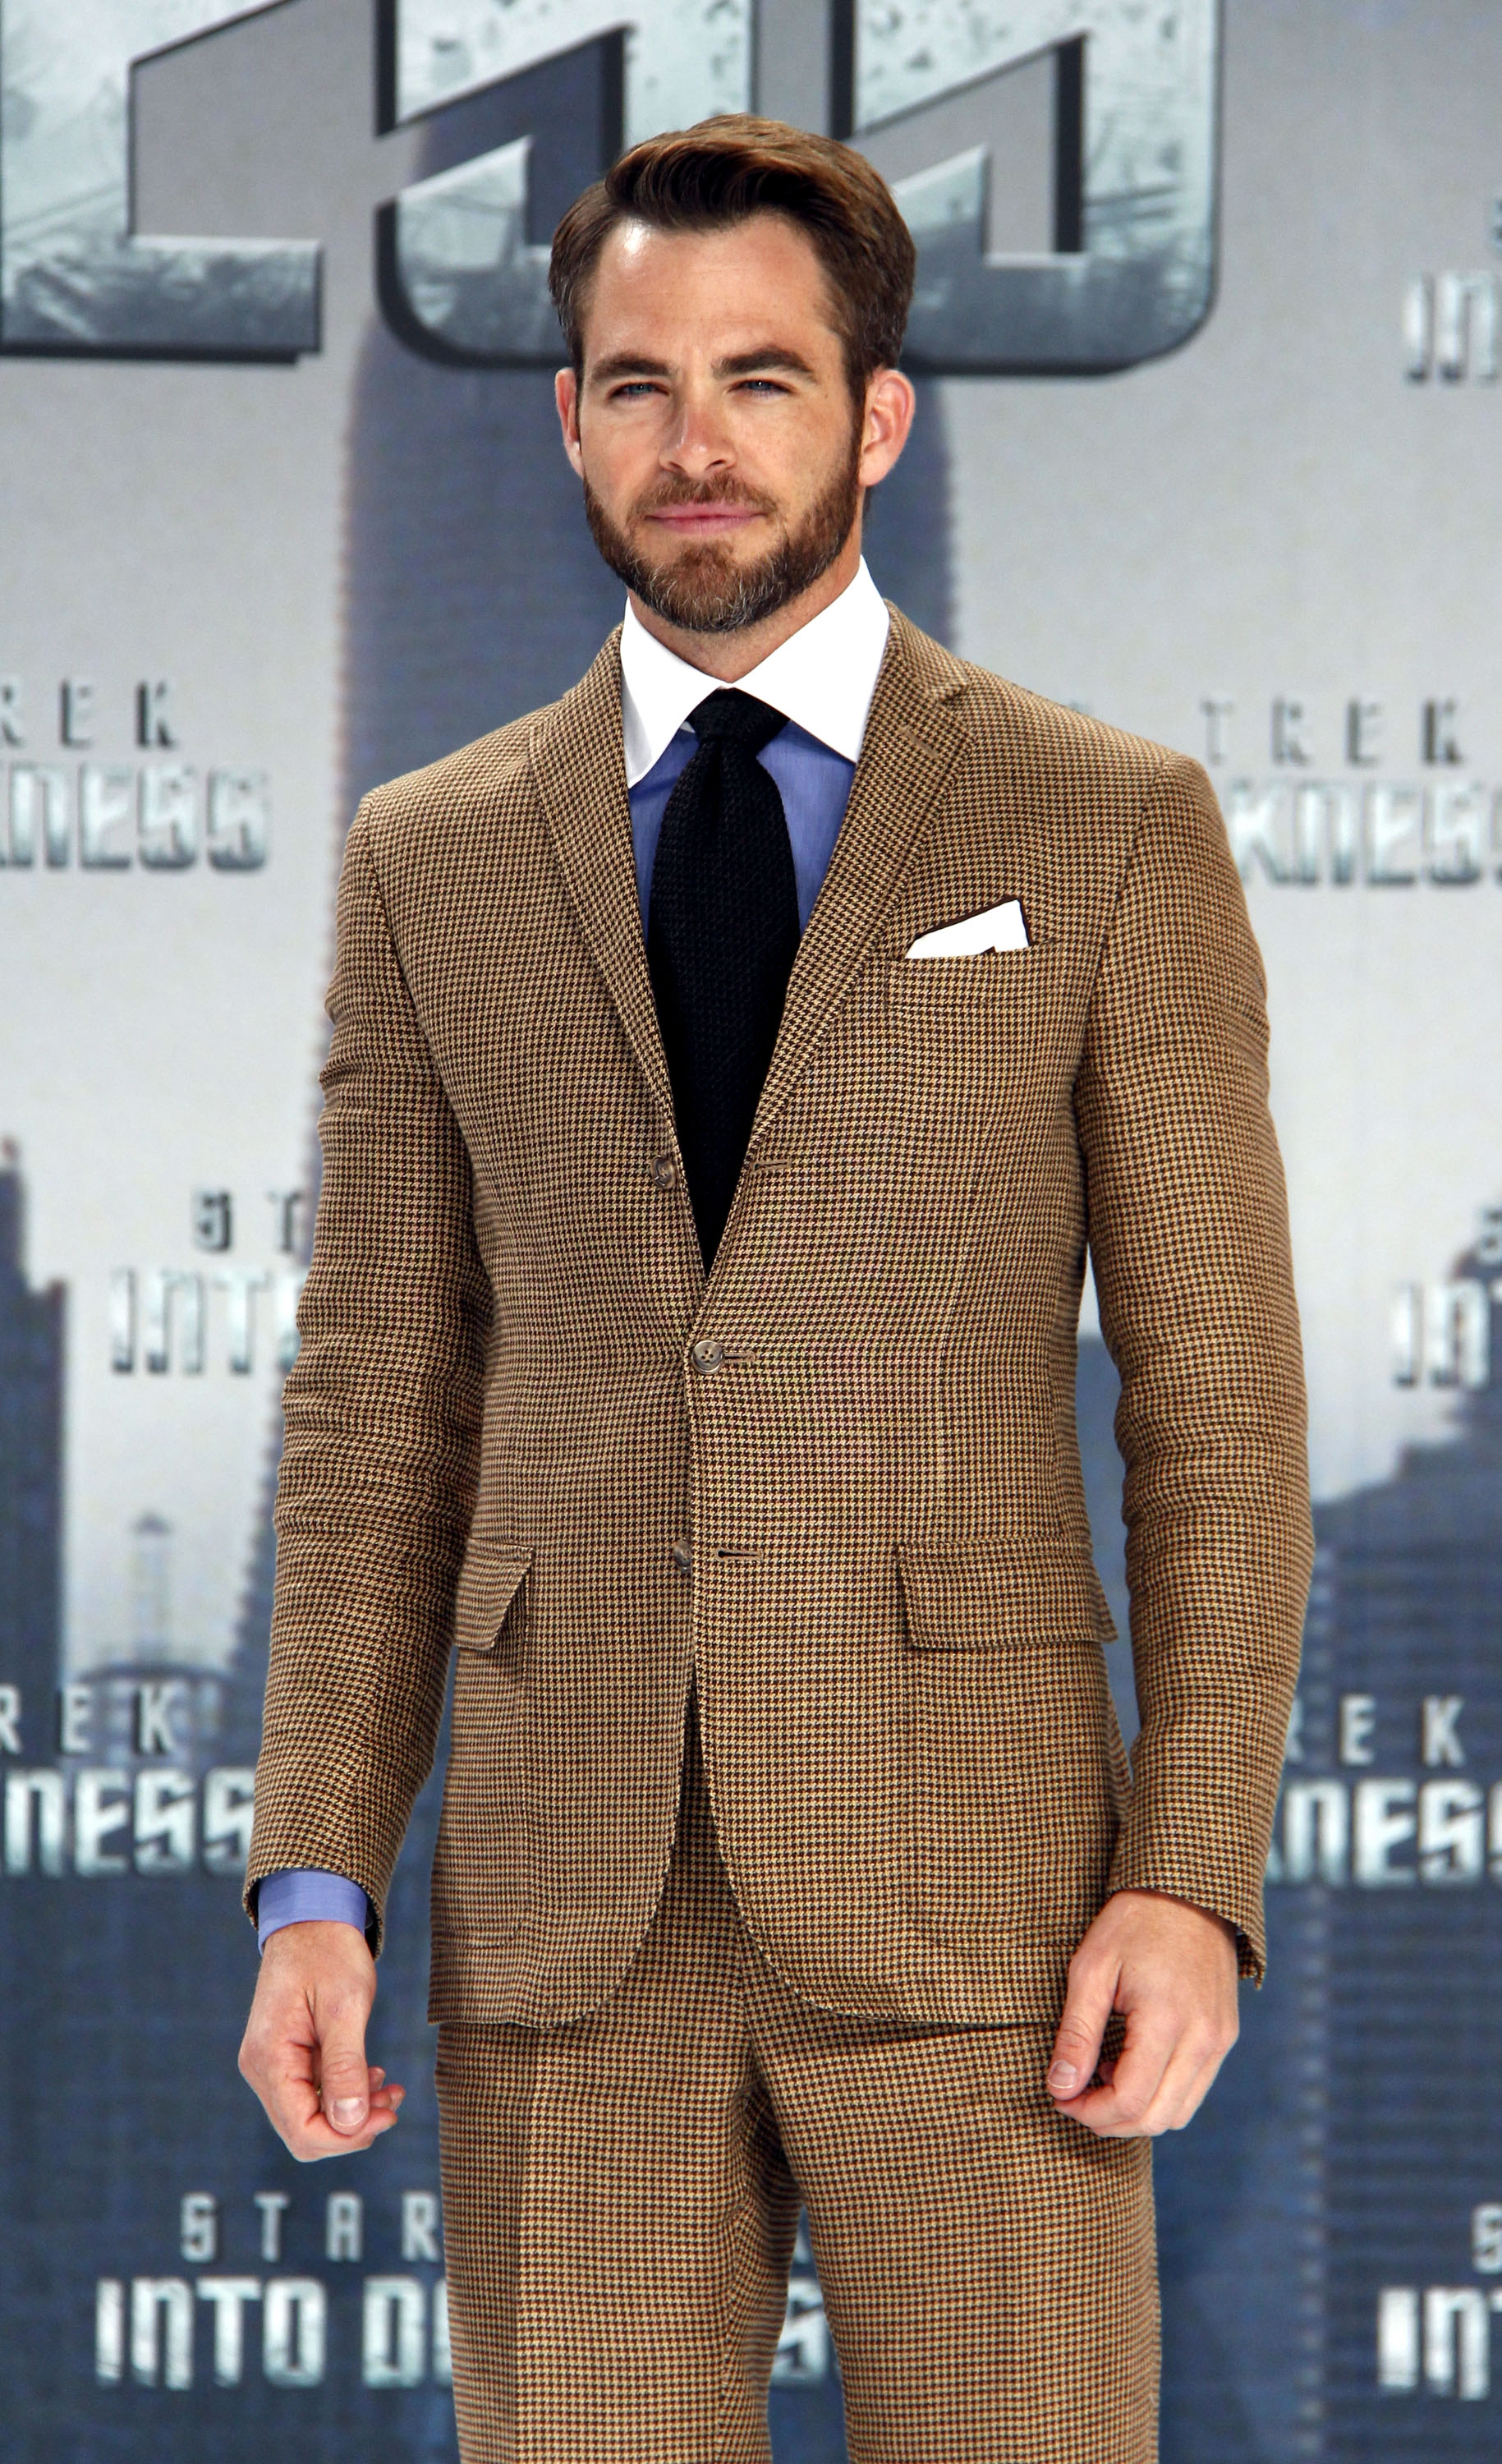 Chris Pine posed solo on the red carpet at the German premiere of Star Trek Into the Darkness.